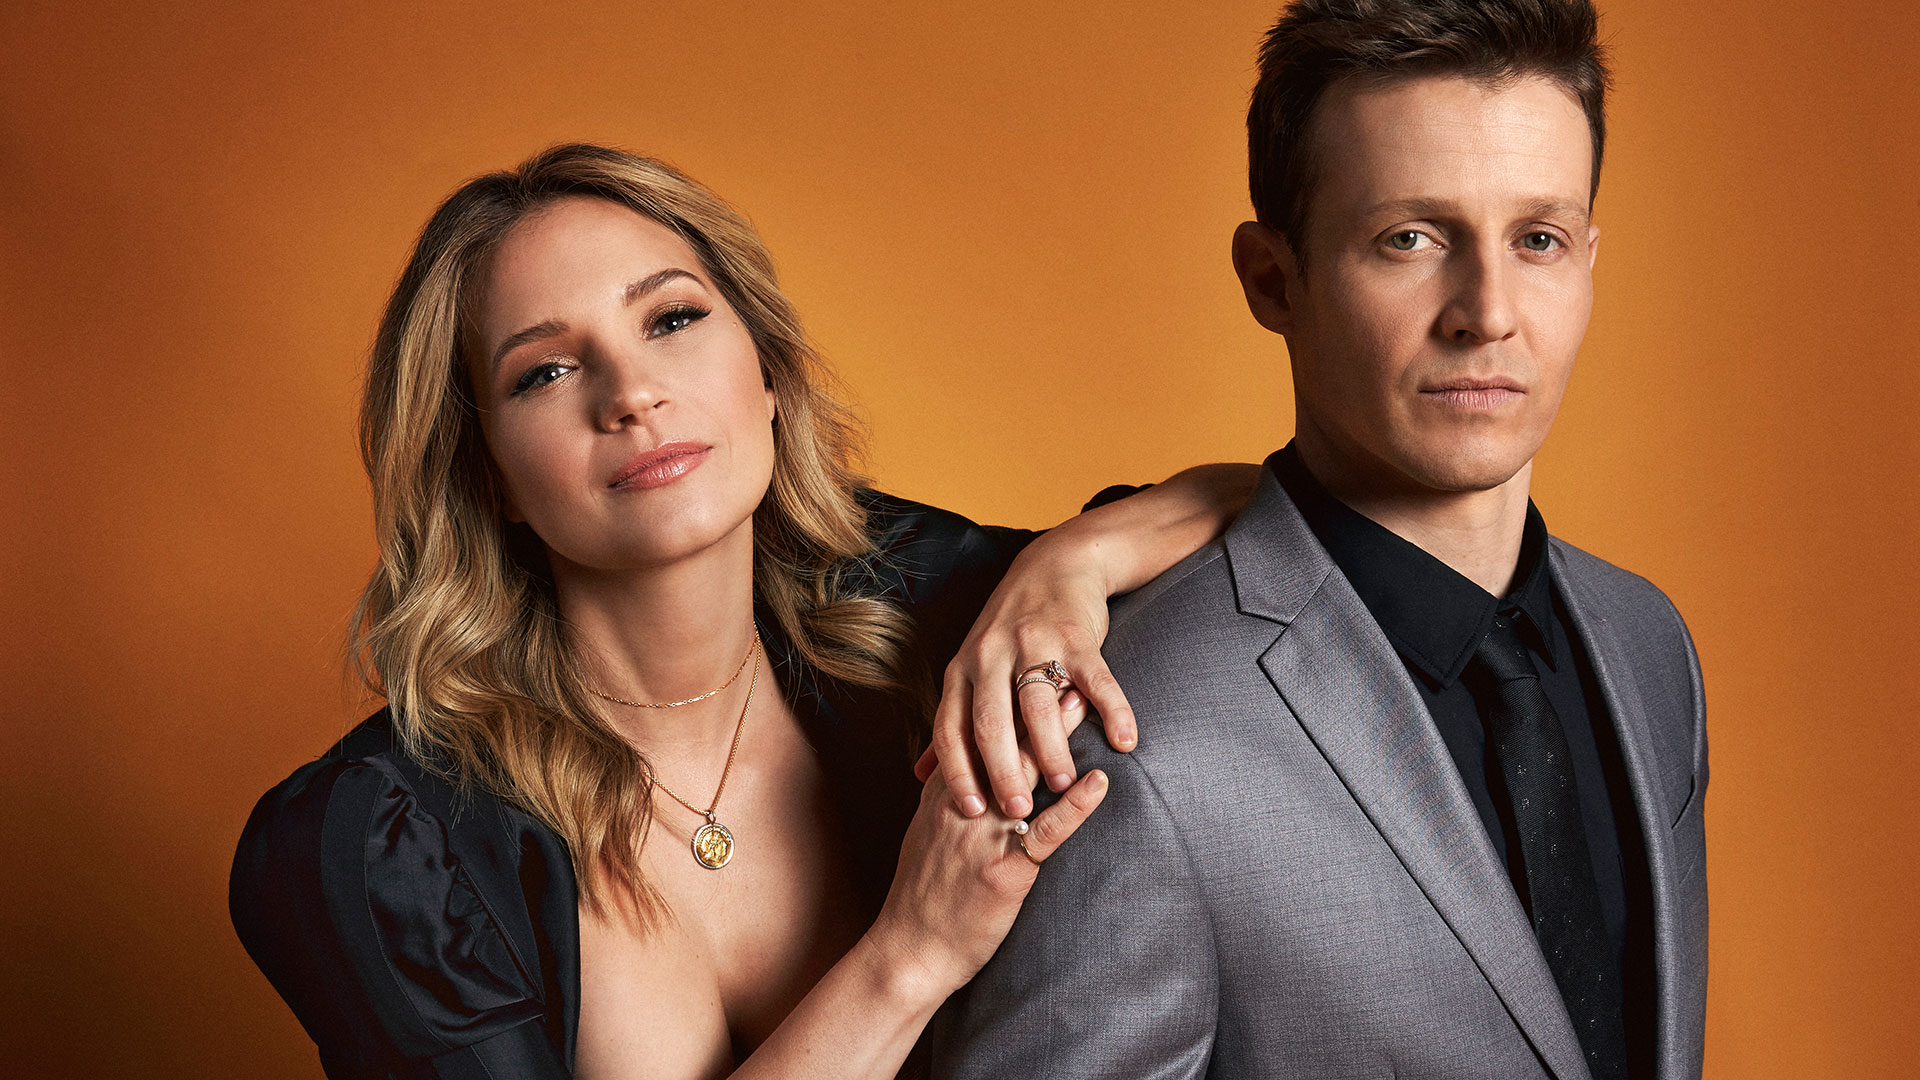 Vanessa Ray and Will Estes were unsure about on-screen coupling